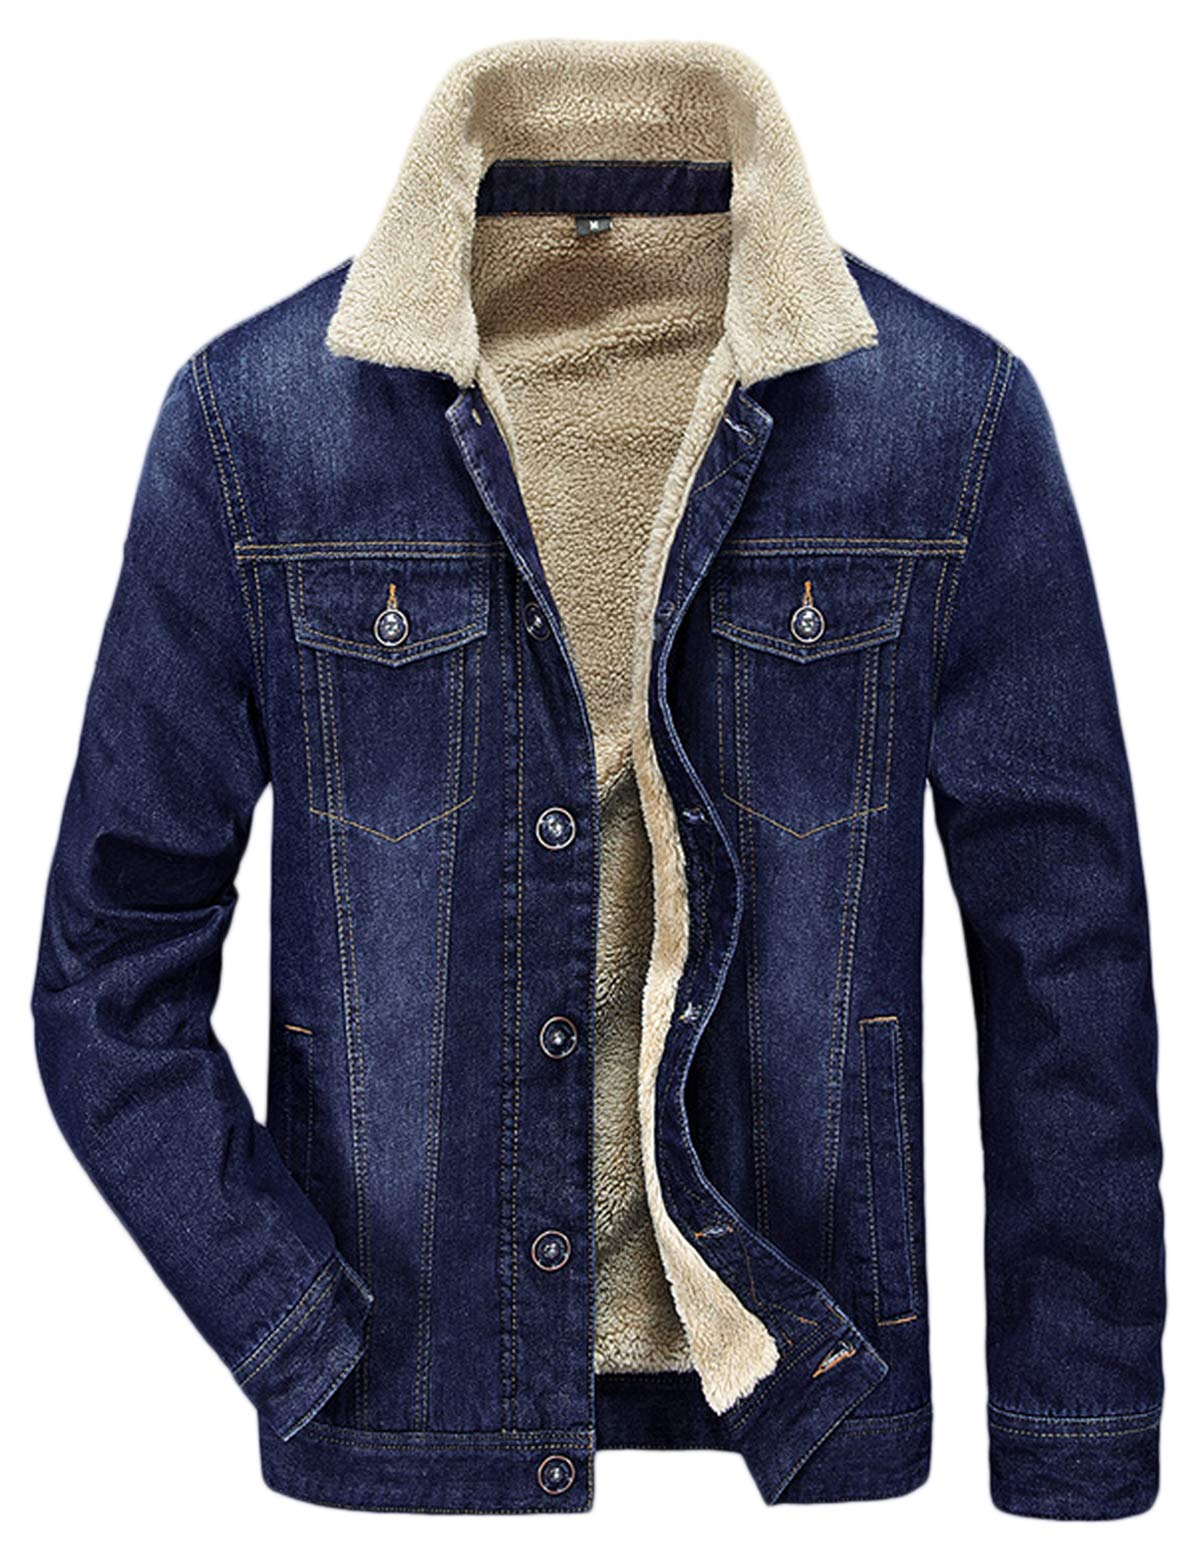 HOW'ON Men's Plus Cotton Warm Fur Collar Sherpa Lined Denim Jacket Button Down Classy Casual Quilted Jeans Coats Outwear Blue S by HOW'ON